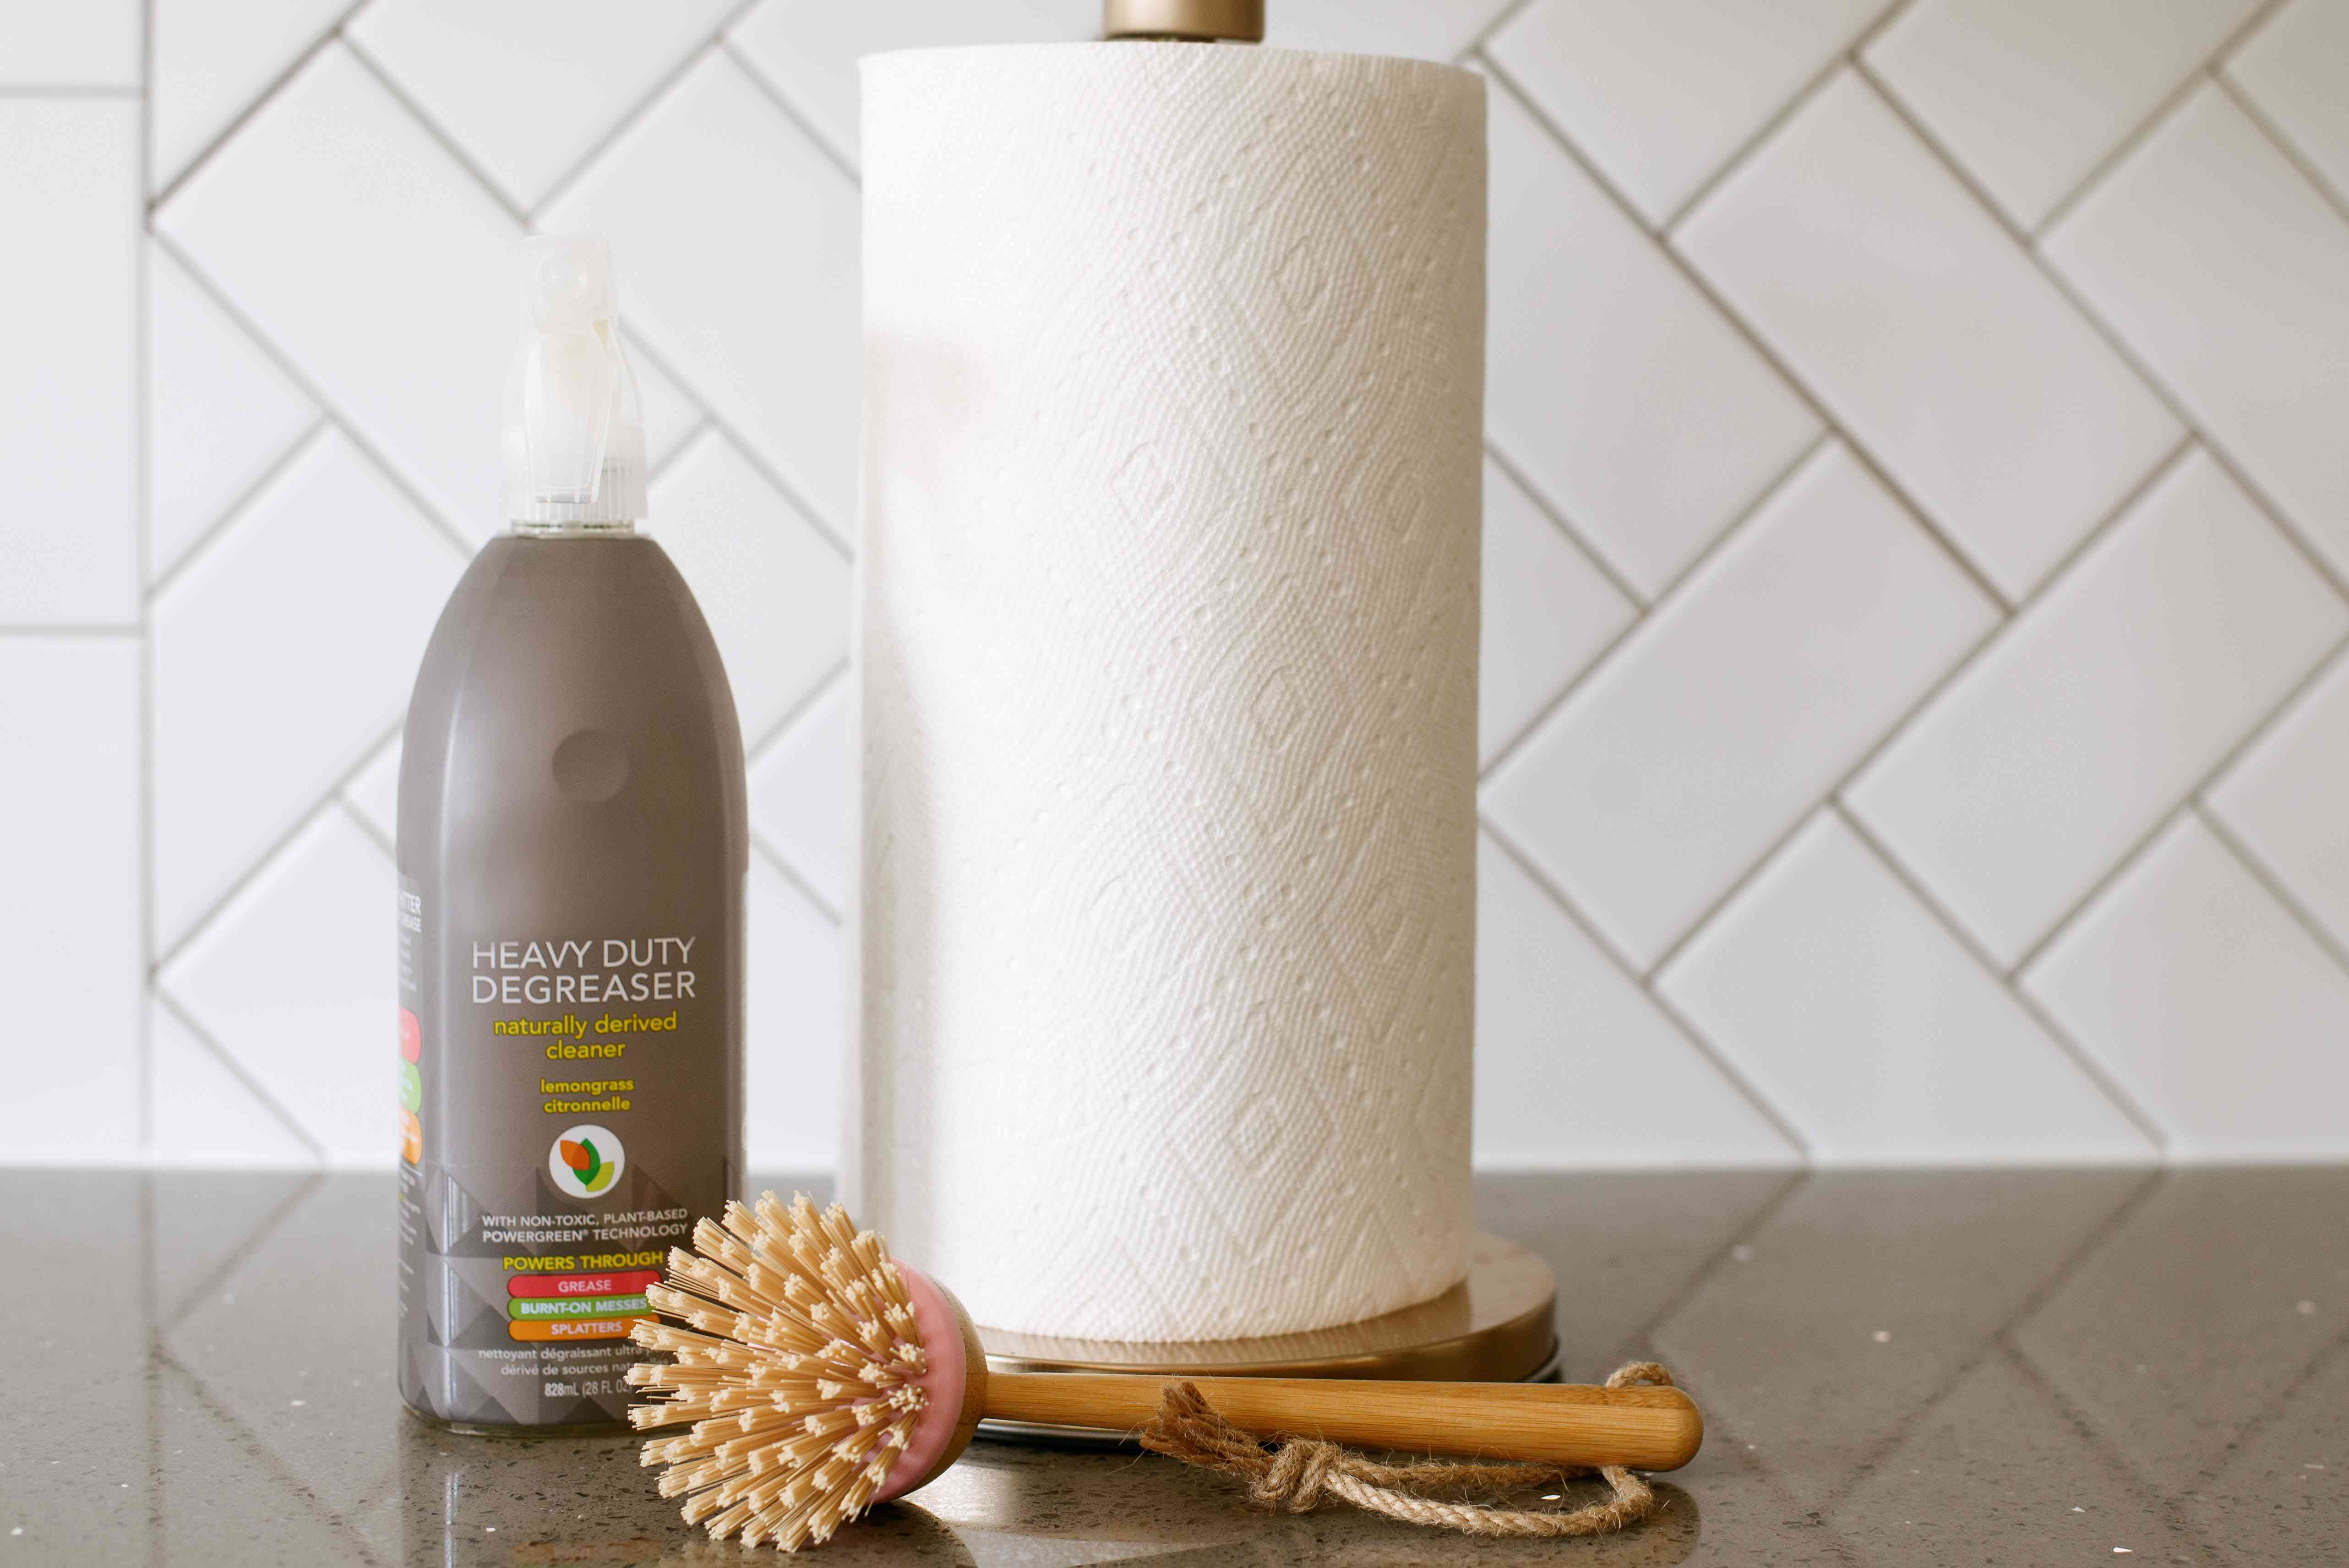 Paper towel roll, scrubbing brush and bottle of heavy duty degreaser to clean exterior and interior of range hood